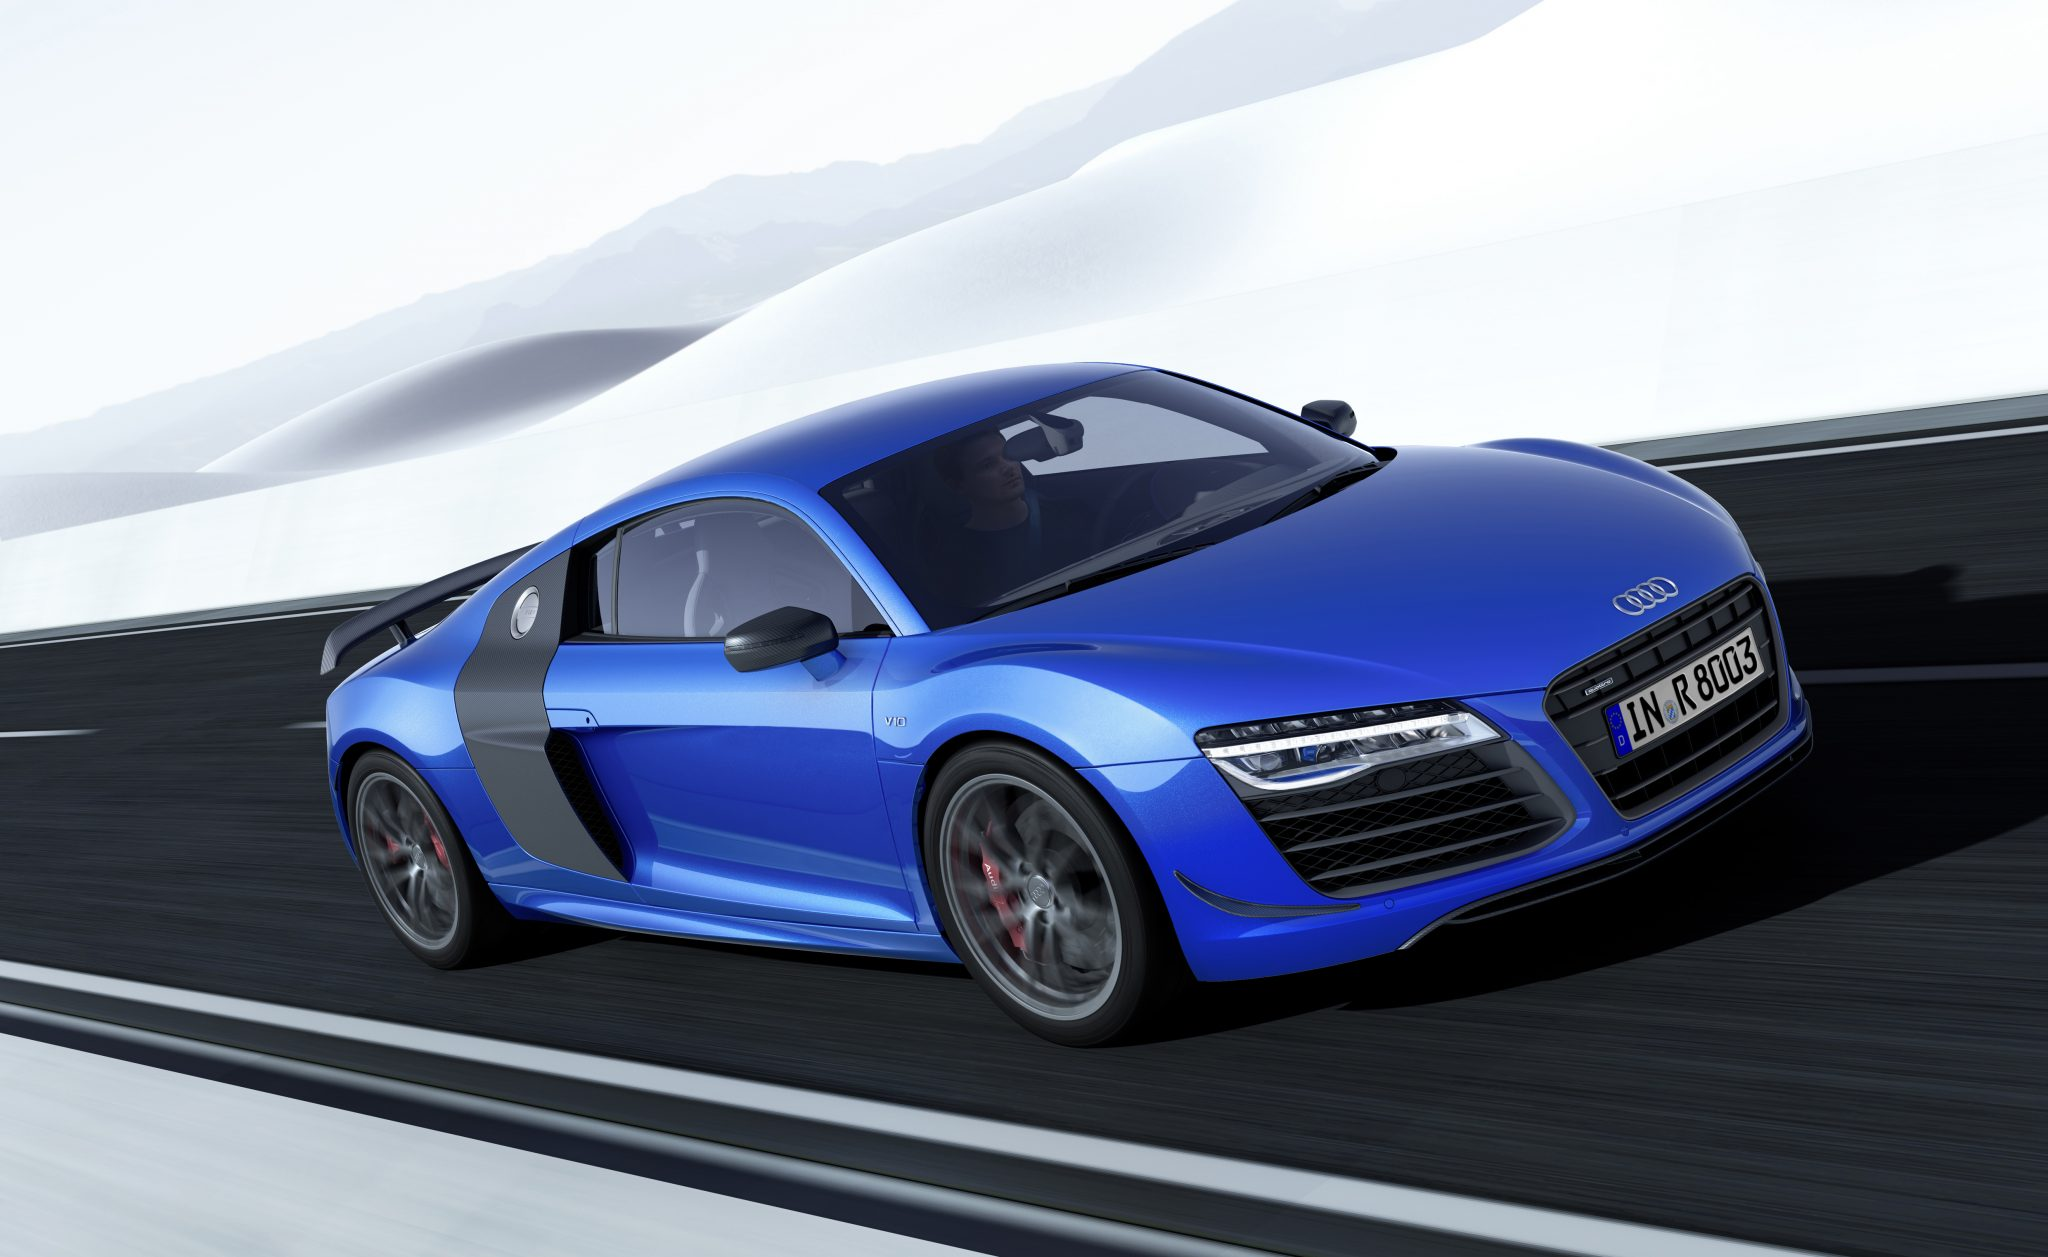 Audi Cars News Le R8 Lmx First In The World With Laser